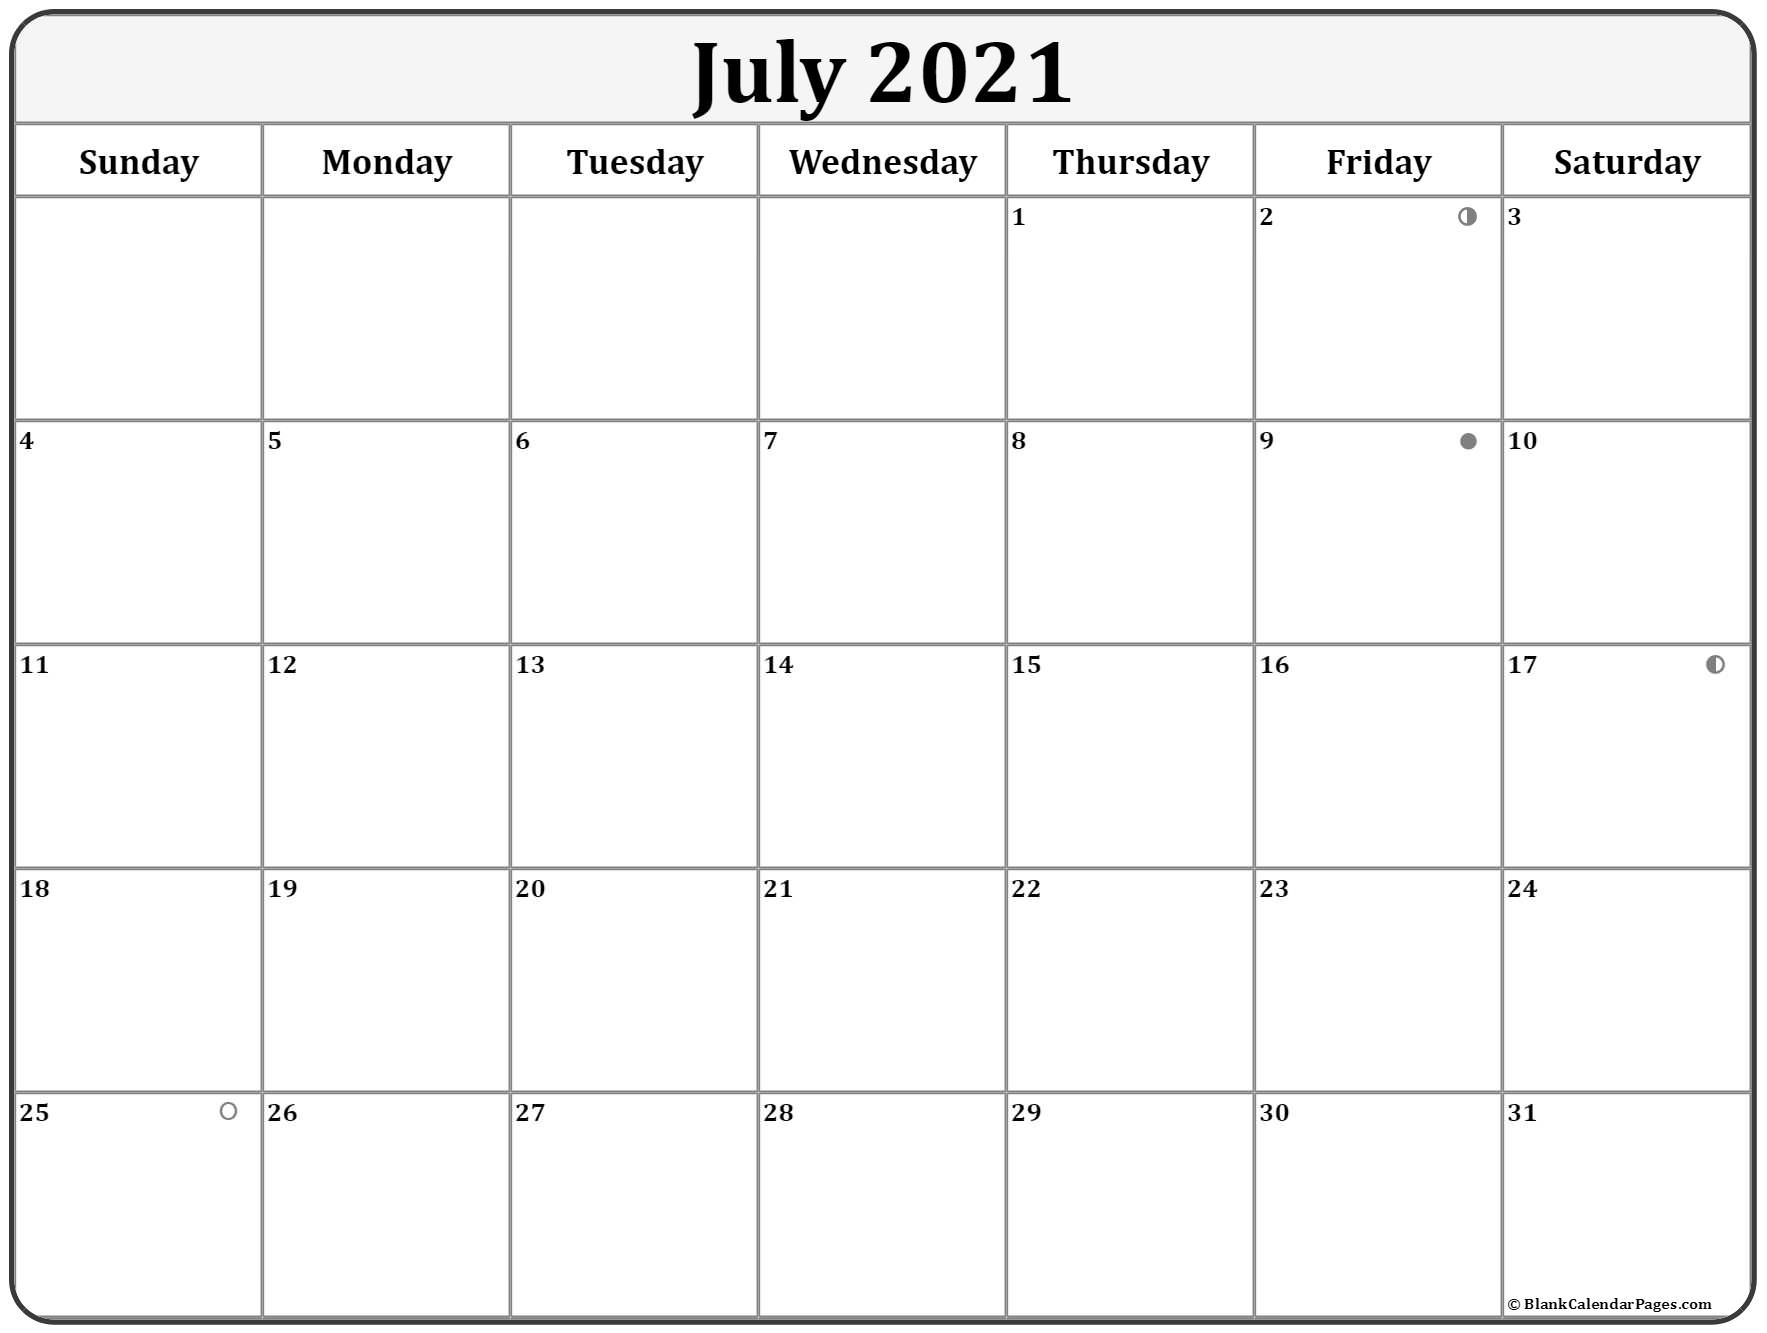 July 2021 Lunar Calendar | Moon Phase Calendar Throughout 2021 Deer Hunting Lunar Calendar